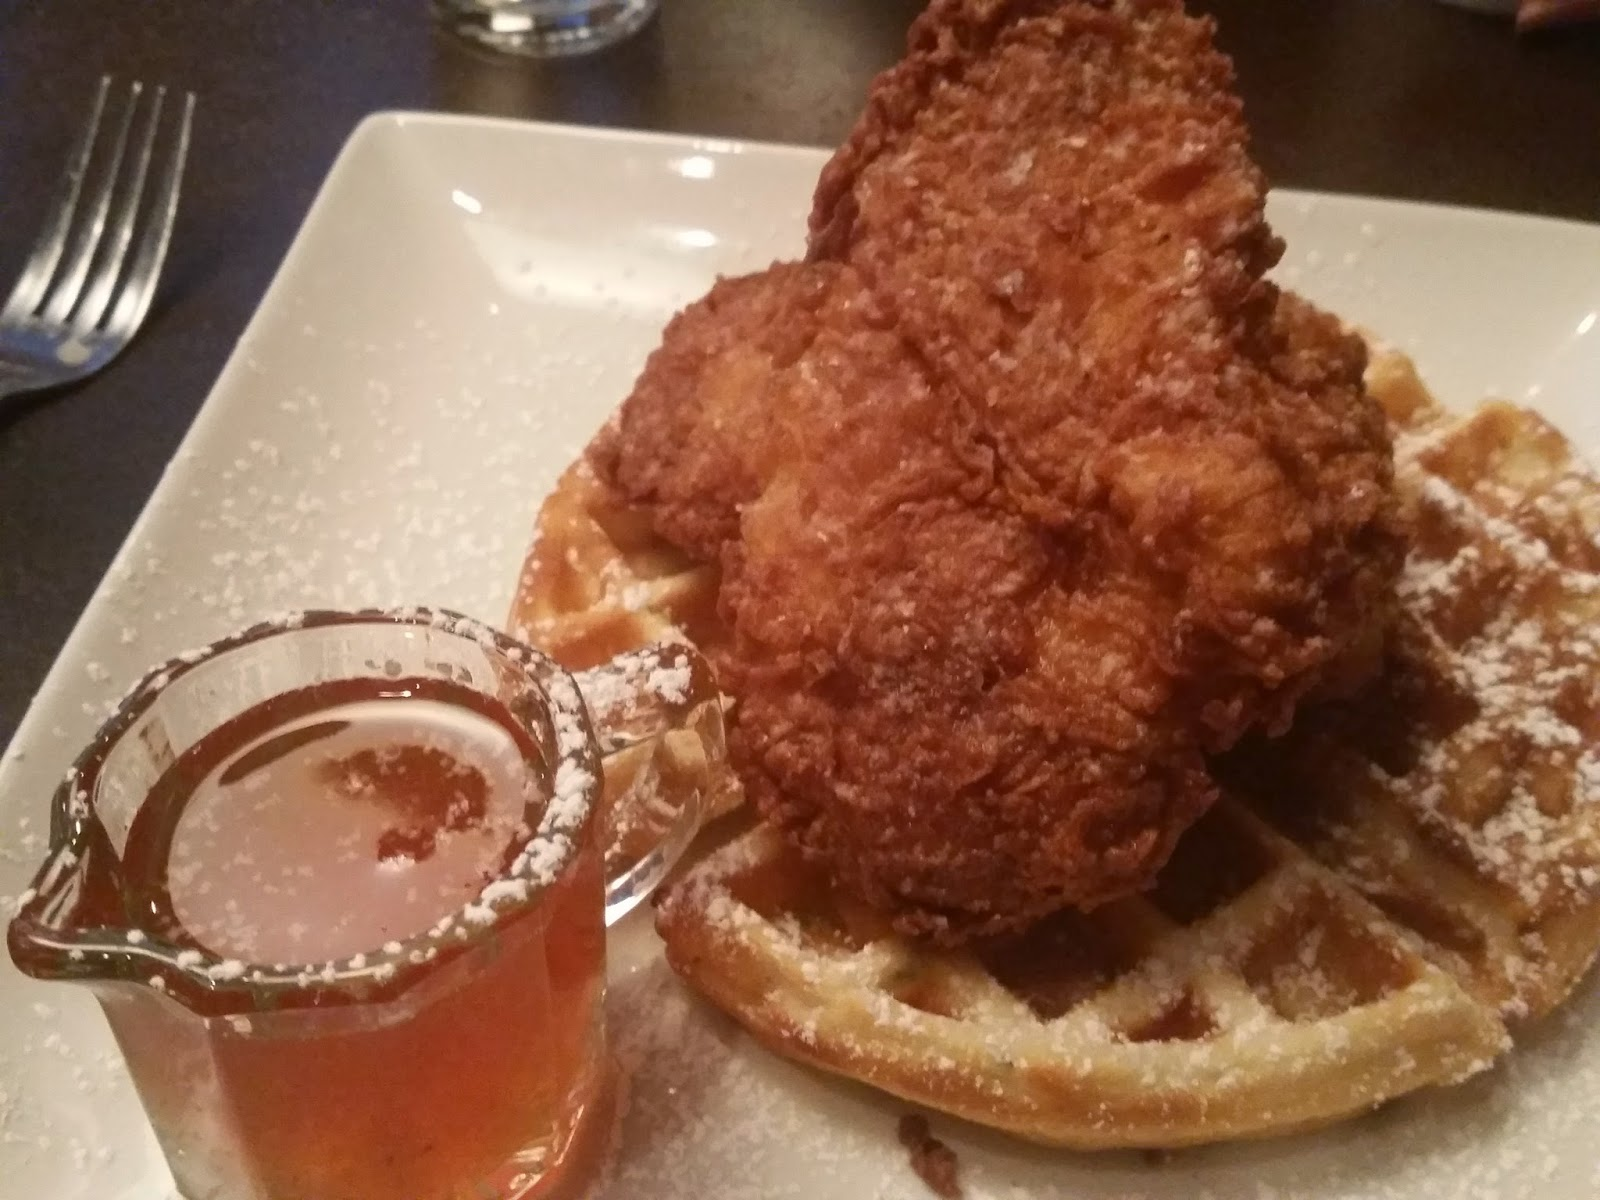 SOHO Restaurant, chicken and waffles